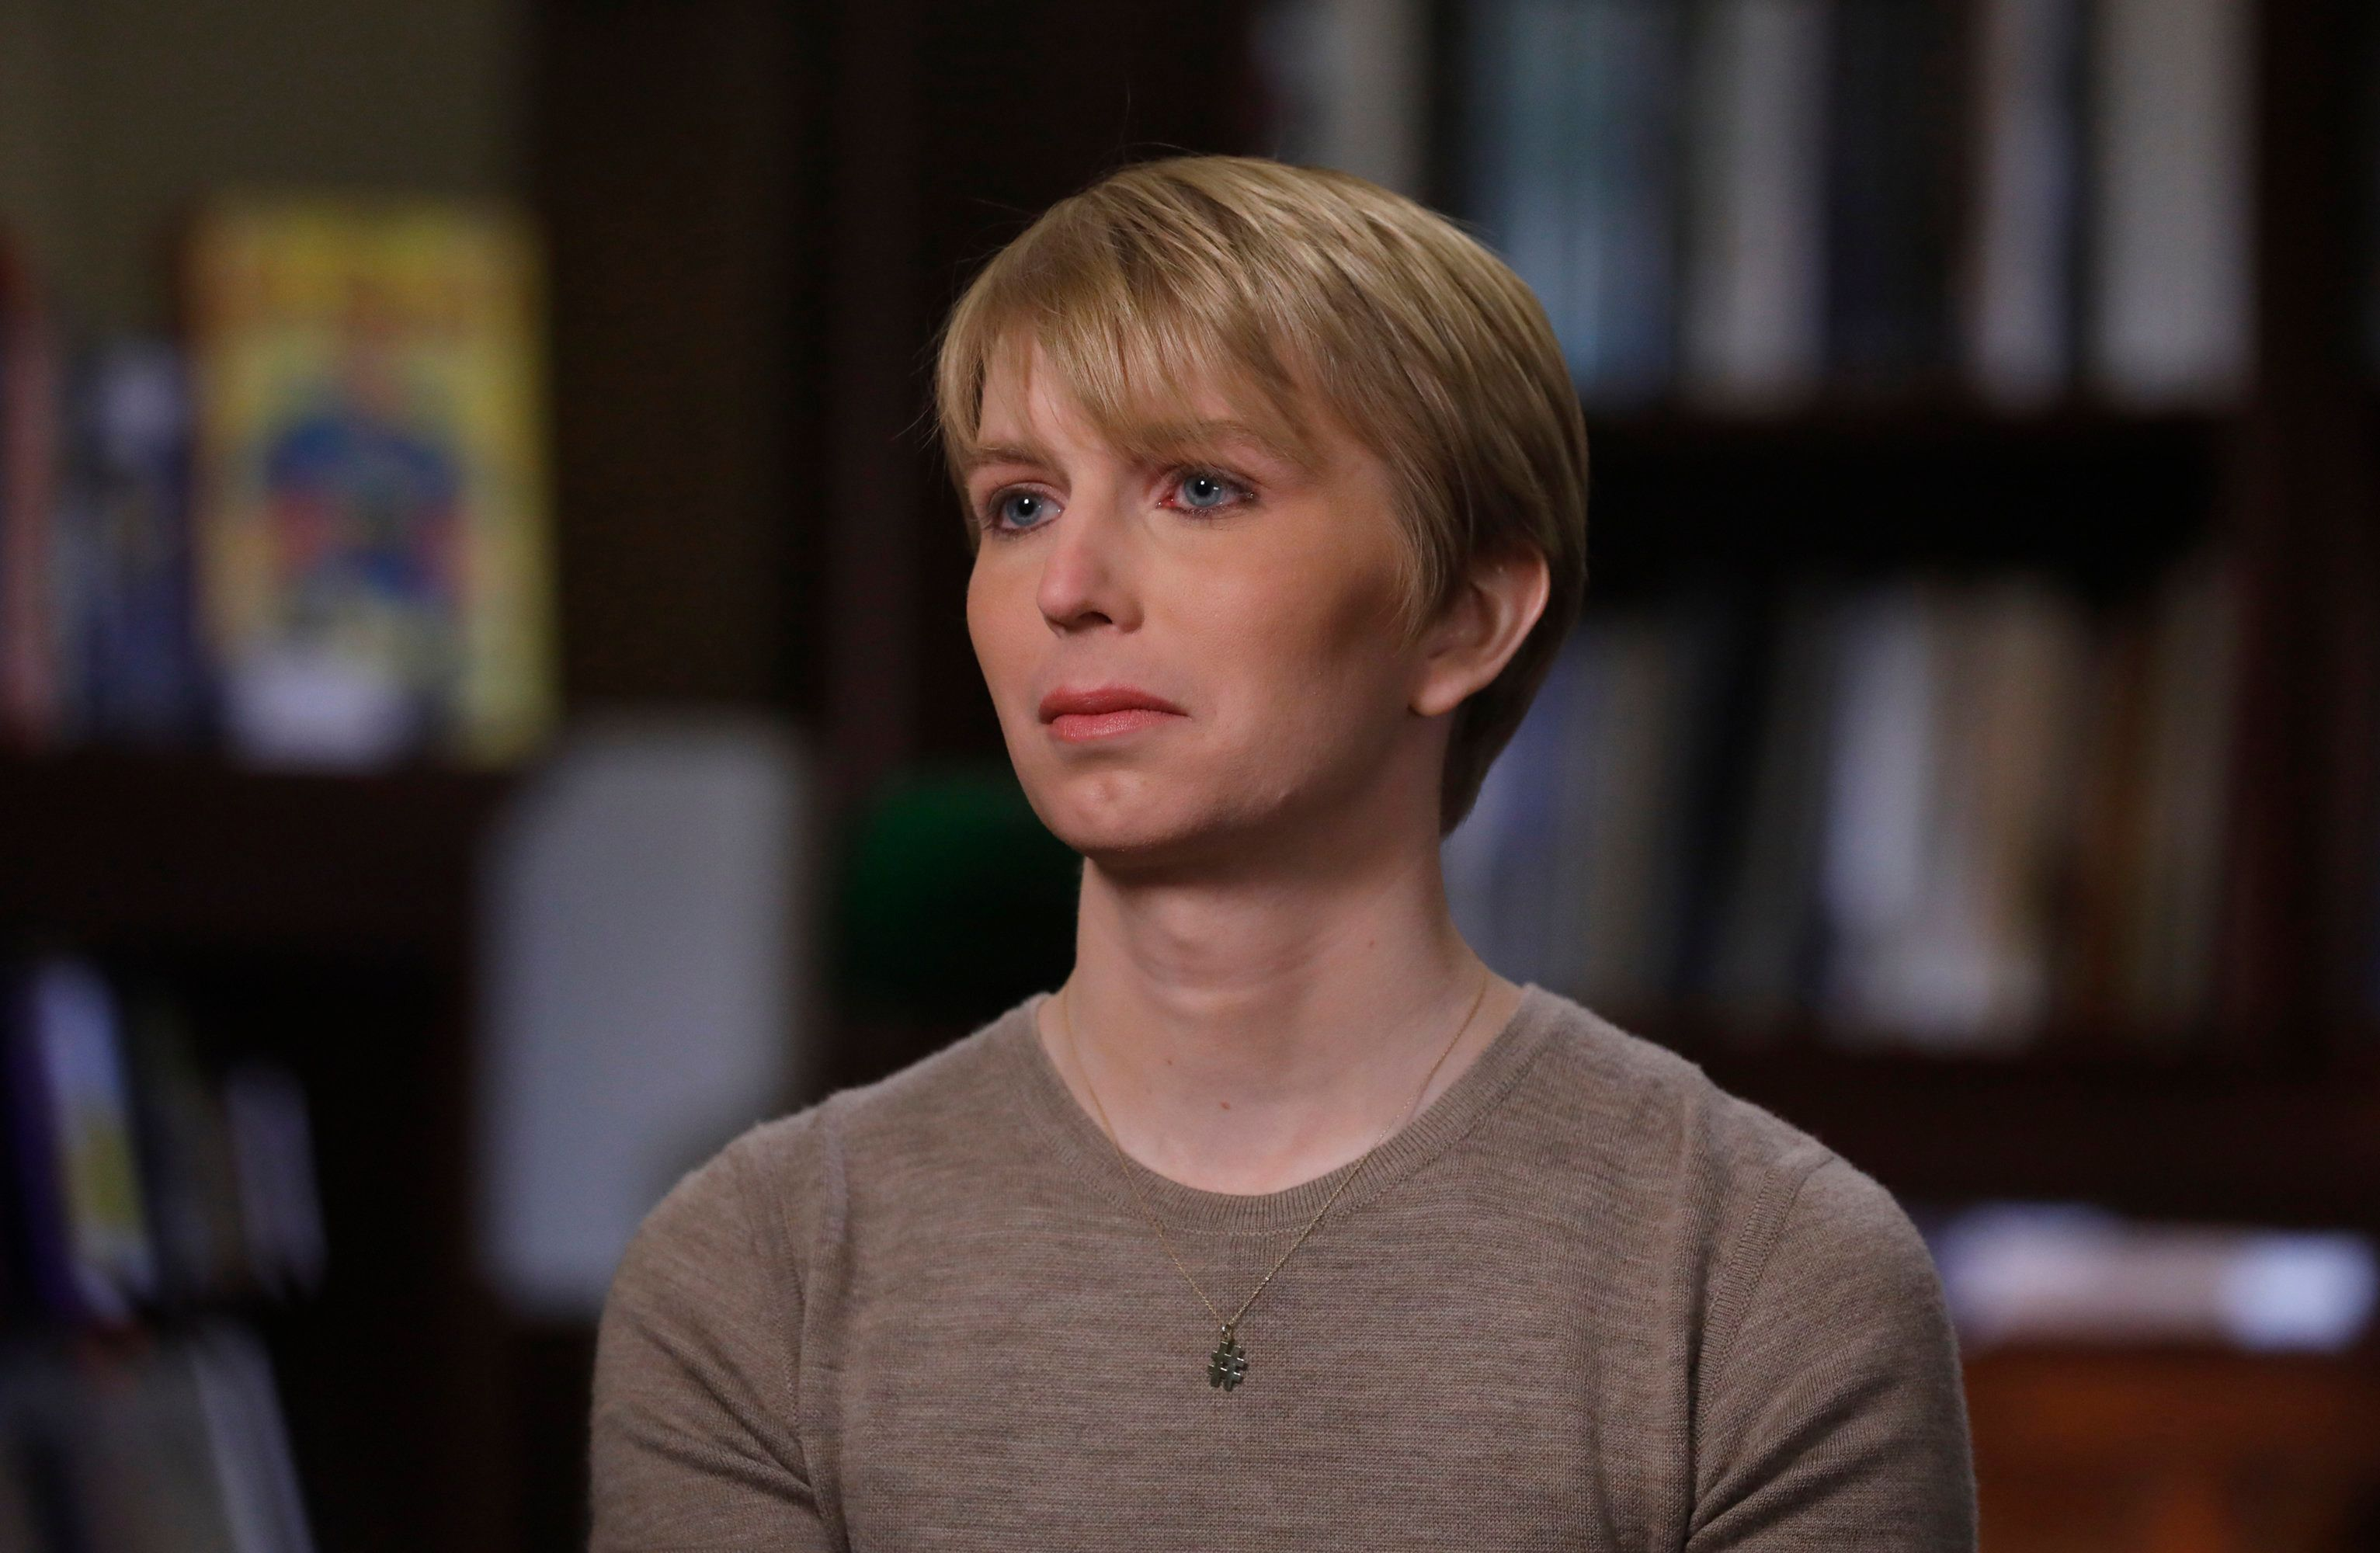 Chelsea Manning Responds To Trump's Ban On Trans Service